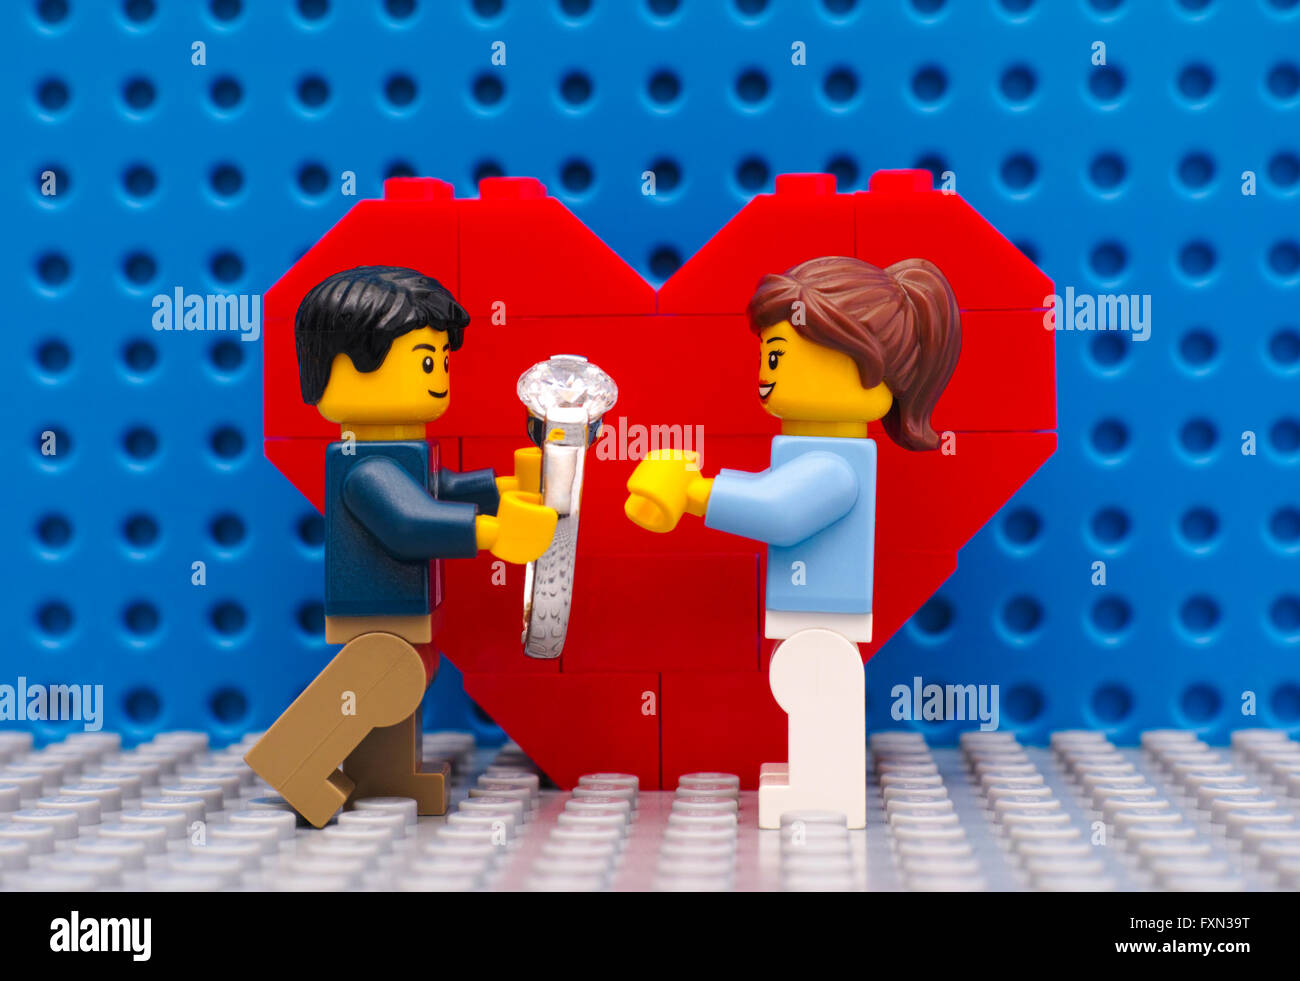 Lego man with ring makes marriage proposal to his girl standing in front of heart on Lego gray baseplate. - Stock Image